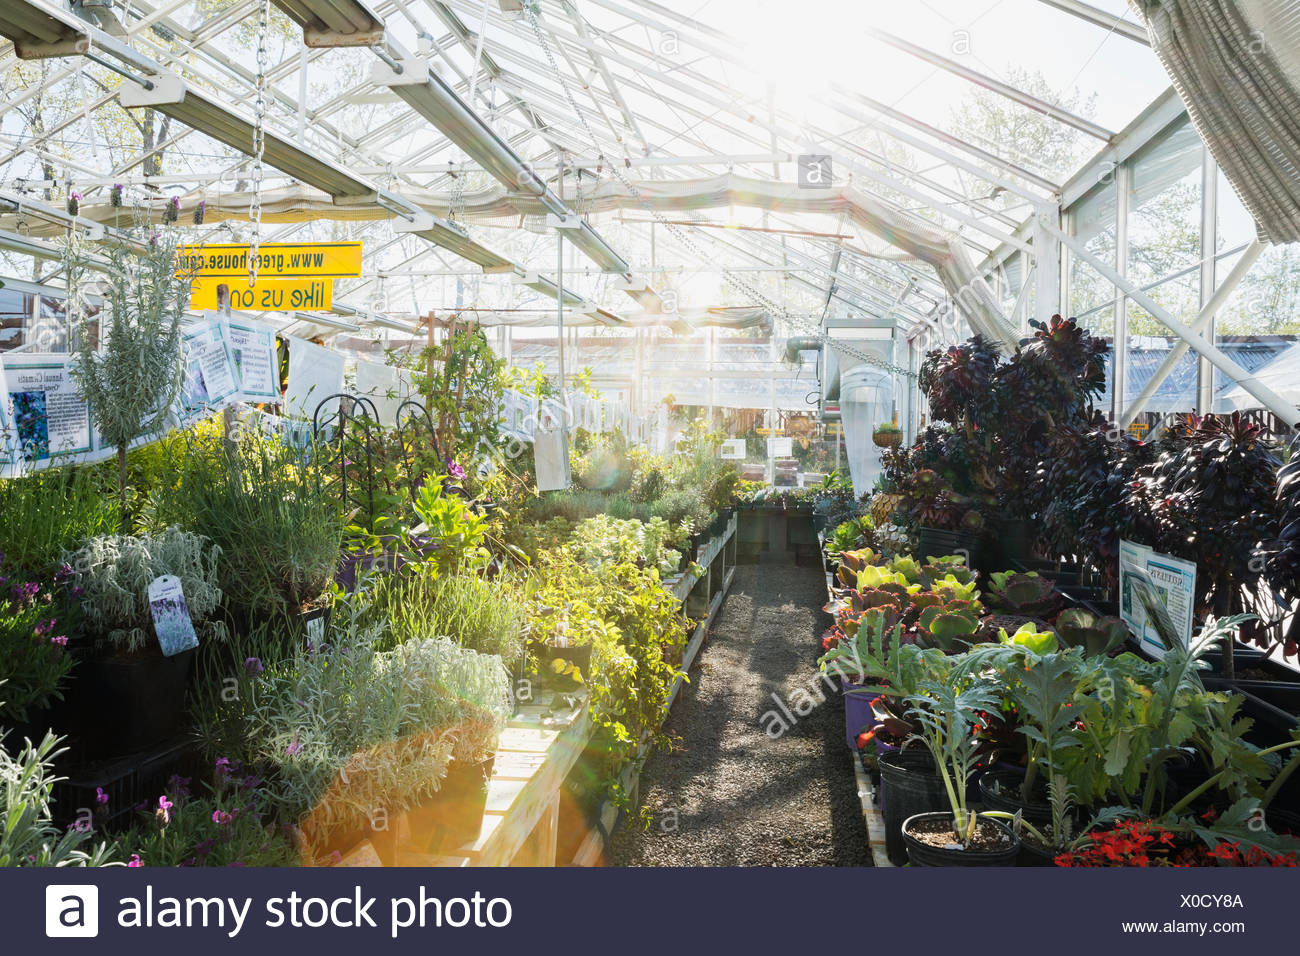 Plants and flowers in sunny greenhouse - Stock Image